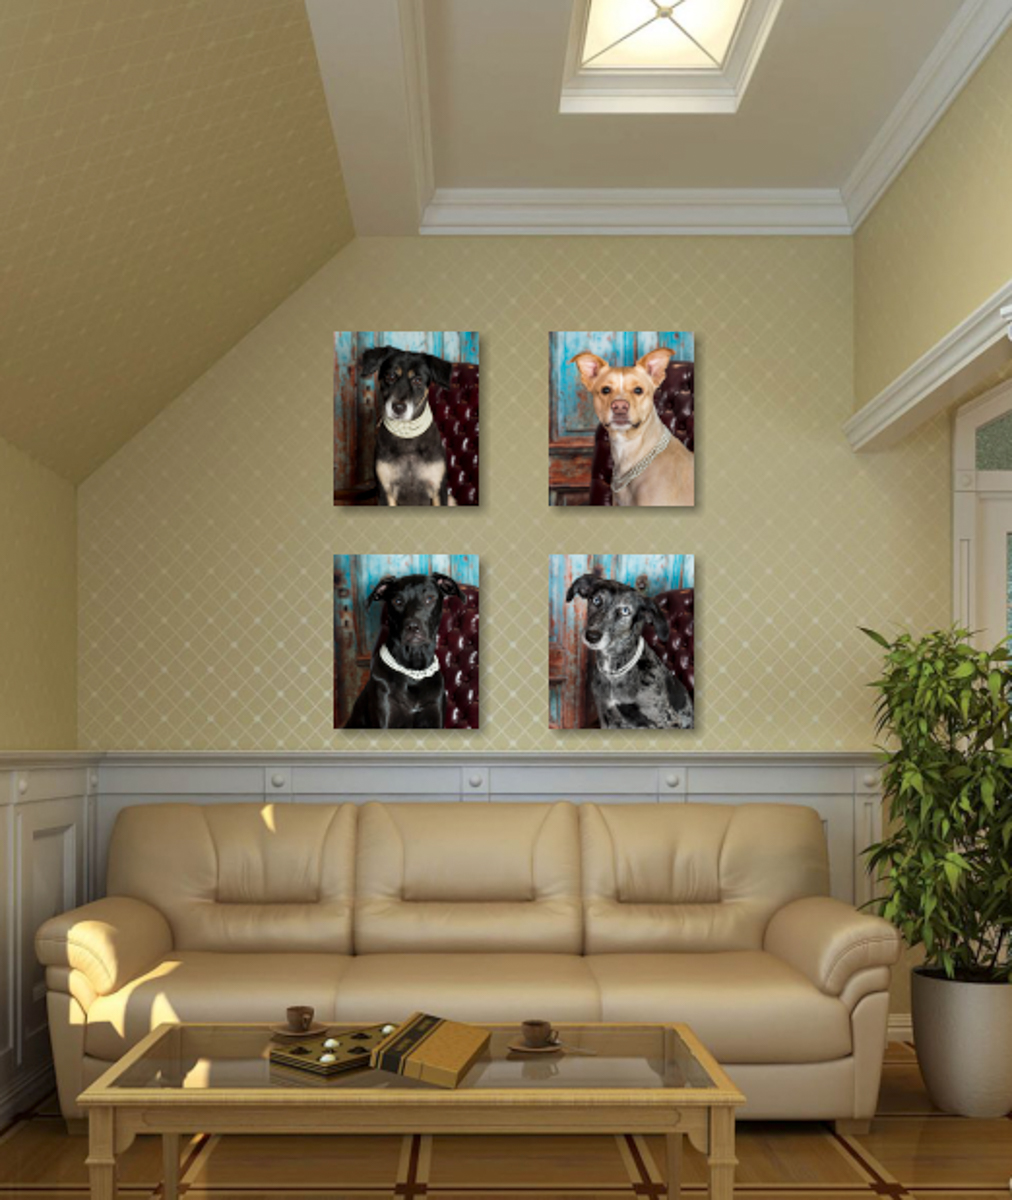 Custom Animal Portraits for your home or office.